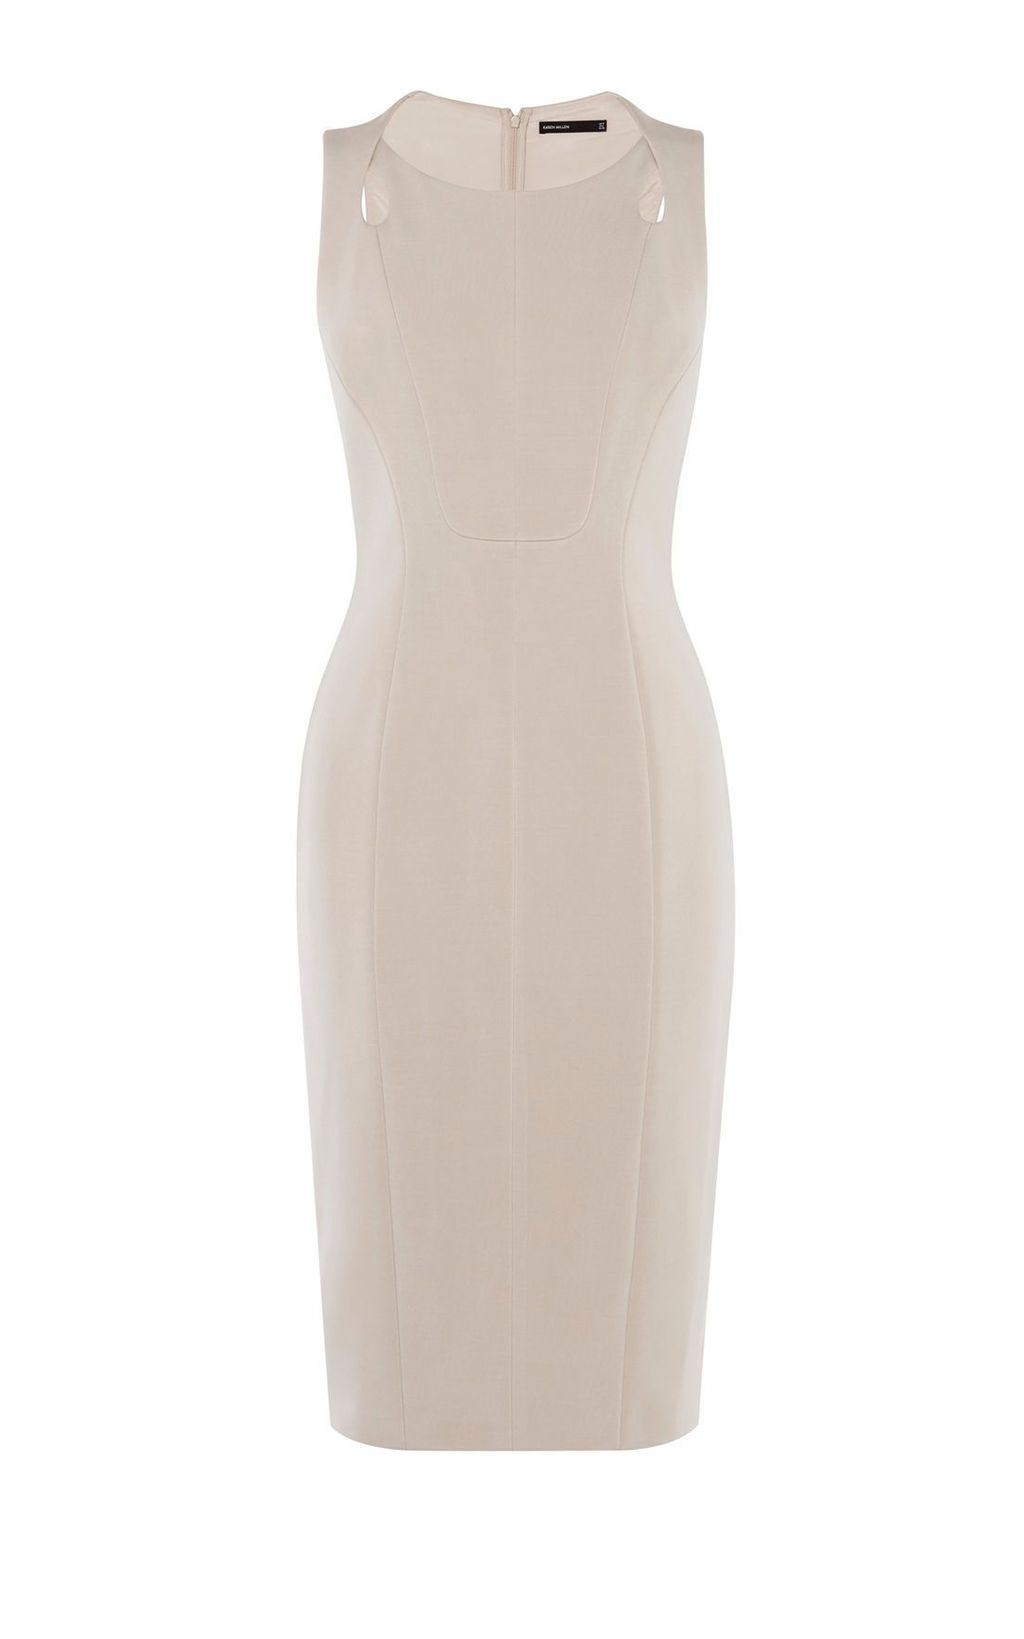 Sinuous Curves Dress, Neutral - fit: tight; pattern: plain; sleeve style: sleeveless; style: bodycon; predominant colour: ivory/cream; occasions: evening; length: just above the knee; fibres: polyester/polyamide - stretch; neckline: crew; sleeve length: sleeveless; texture group: jersey - clingy; pattern type: fabric; season: s/s 2016; wardrobe: event